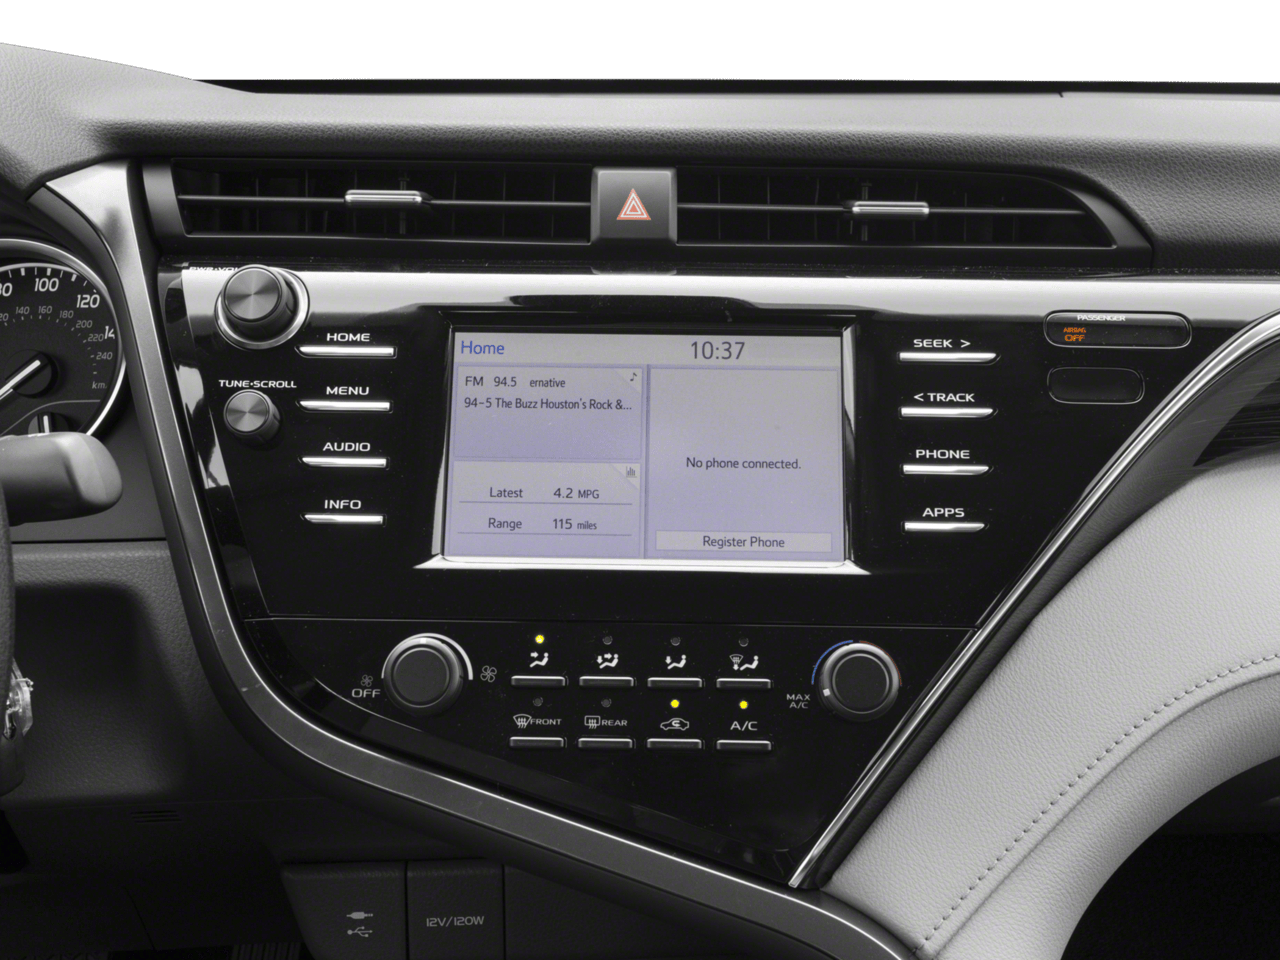 How Do I Dim the Display Screen In My Toyota? - Toyota of Irving